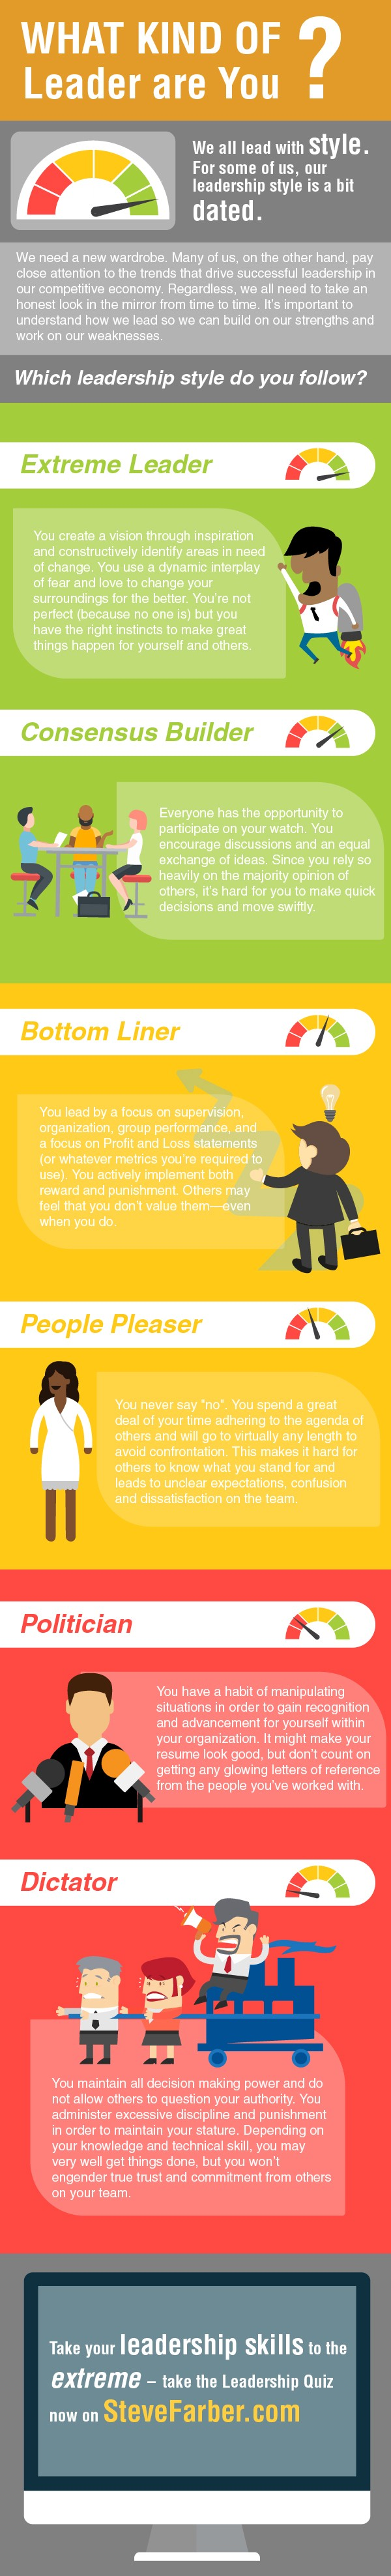 What Kind of Leader Are You? - Vunela